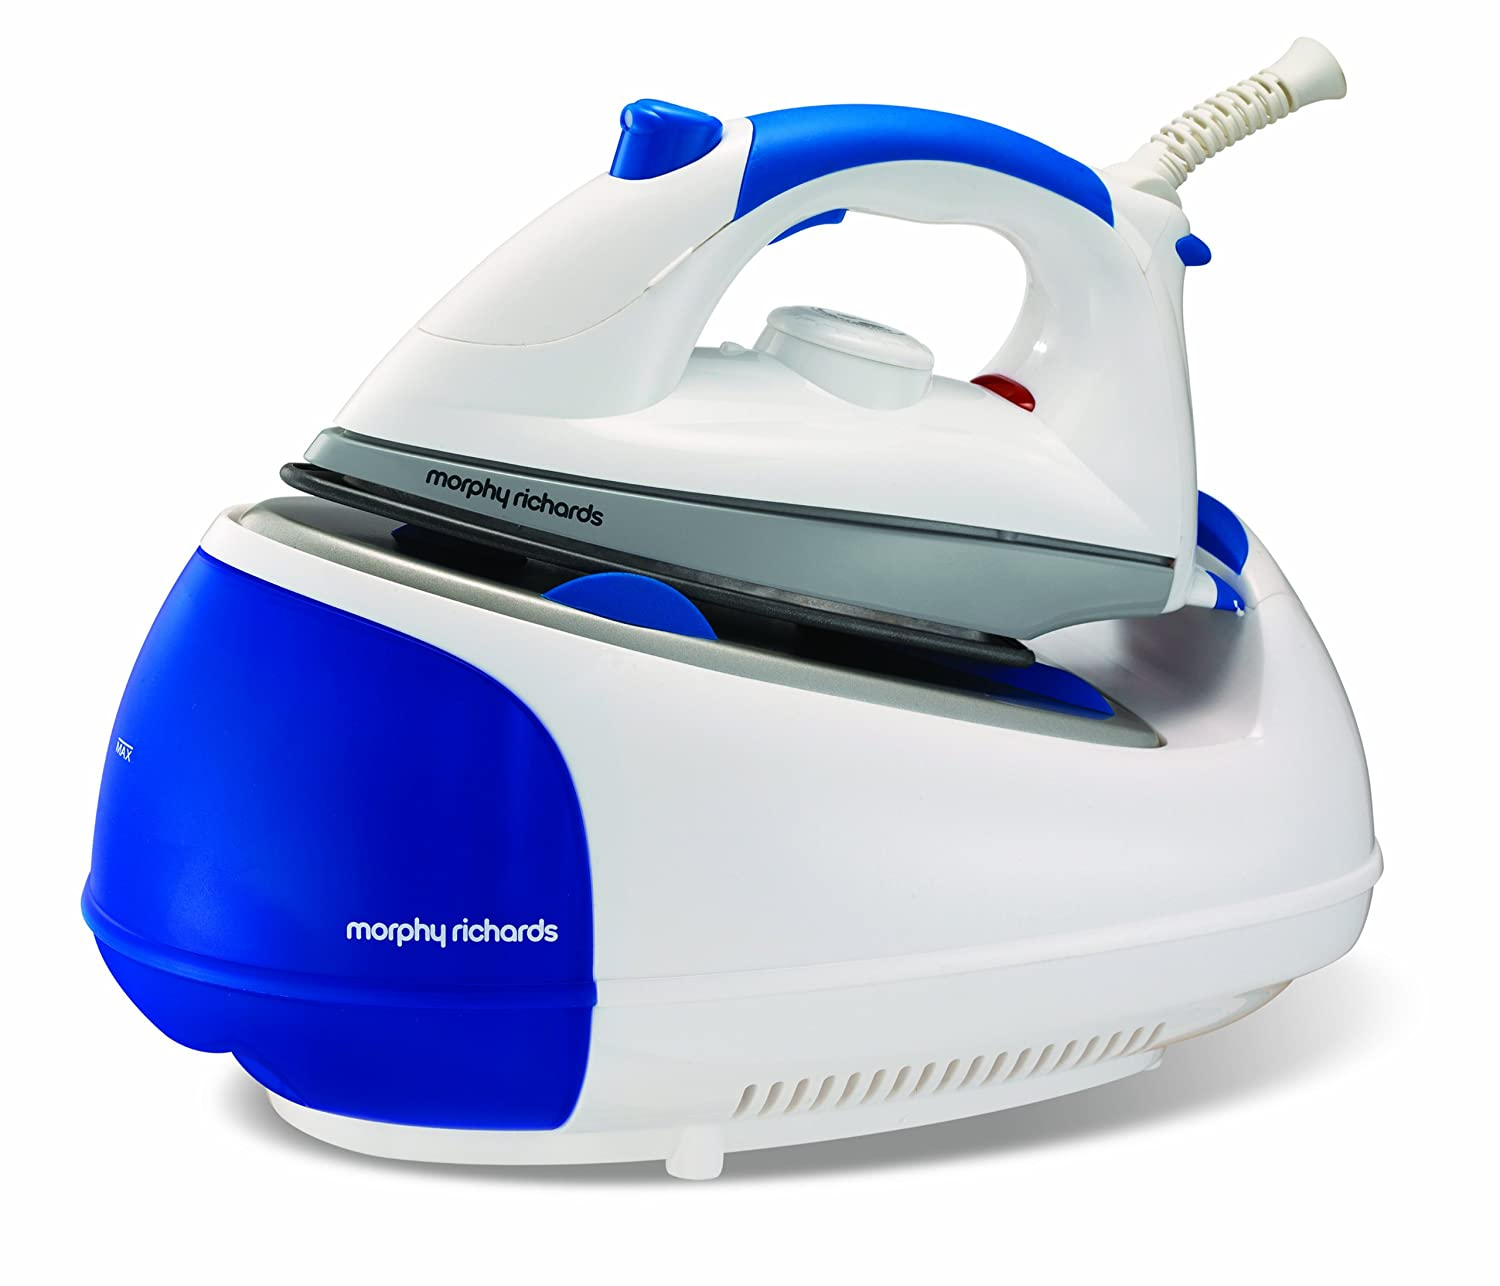 Morphy Richards Jet Steam 42234 Steam Generator Diamond Soleplate - Blue